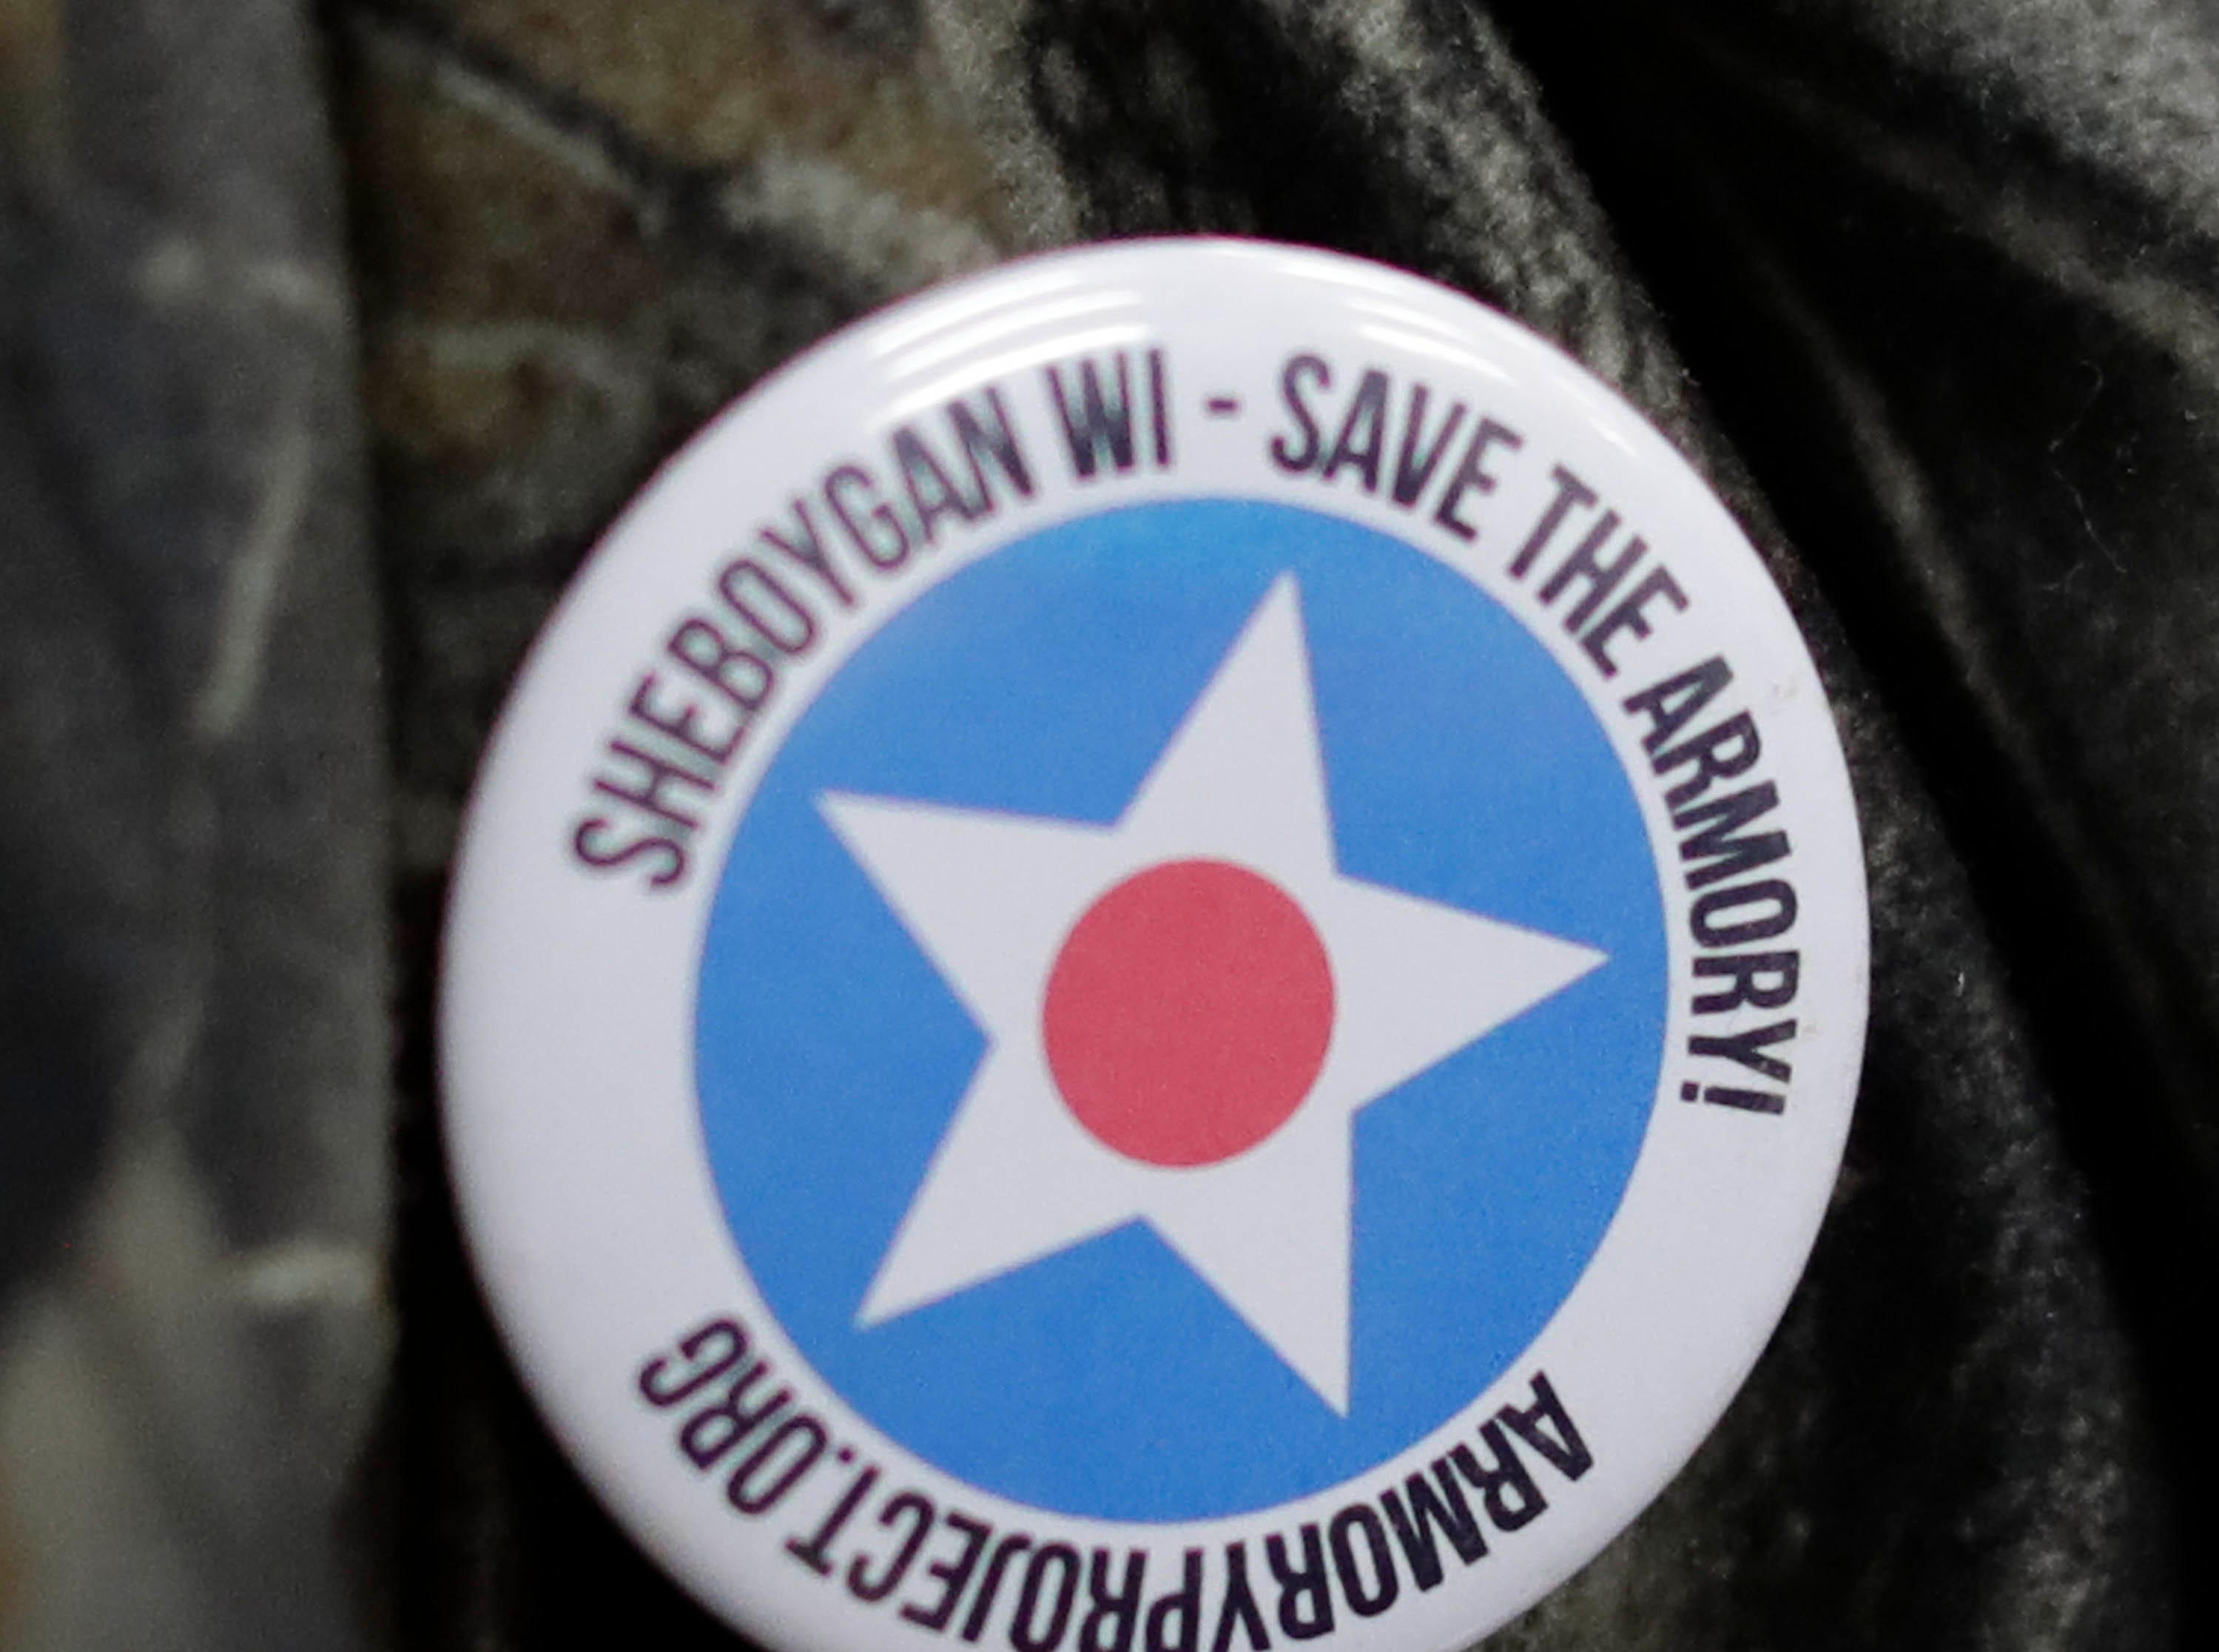 A button was seen during a meeting supporting the Amroy proposals to save the building, Tuesday, March 19, 2019, in Sheboygan, Wis.